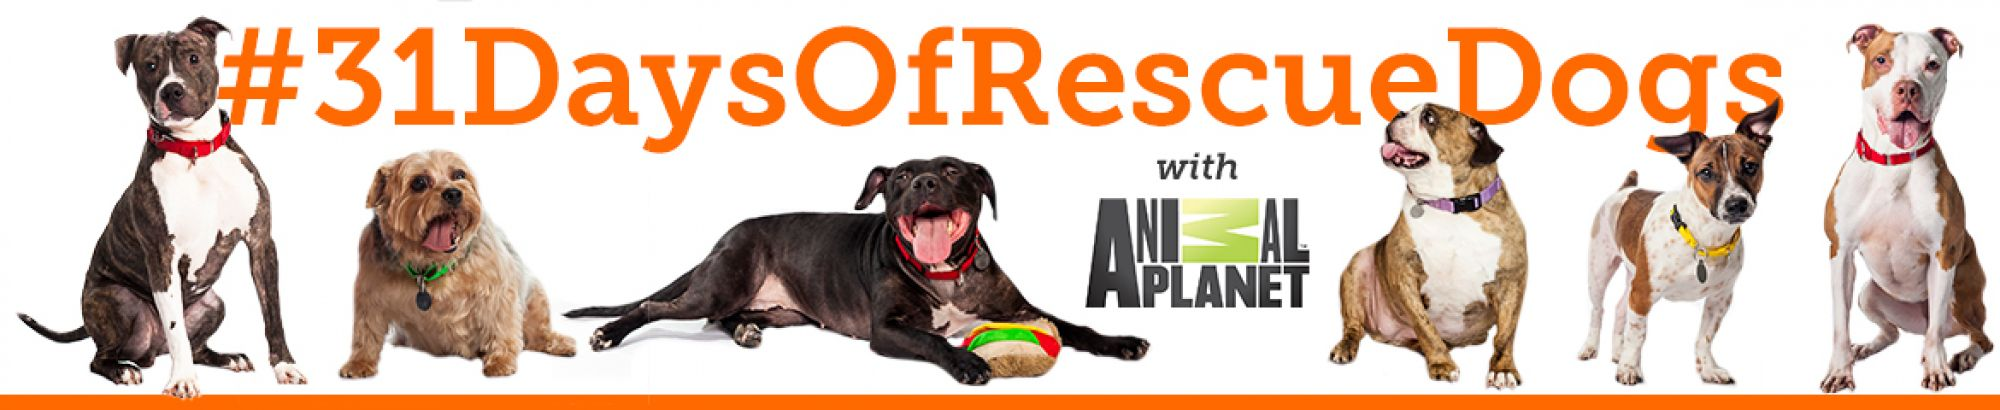 Adopt a Shelter Dog Month Campaign